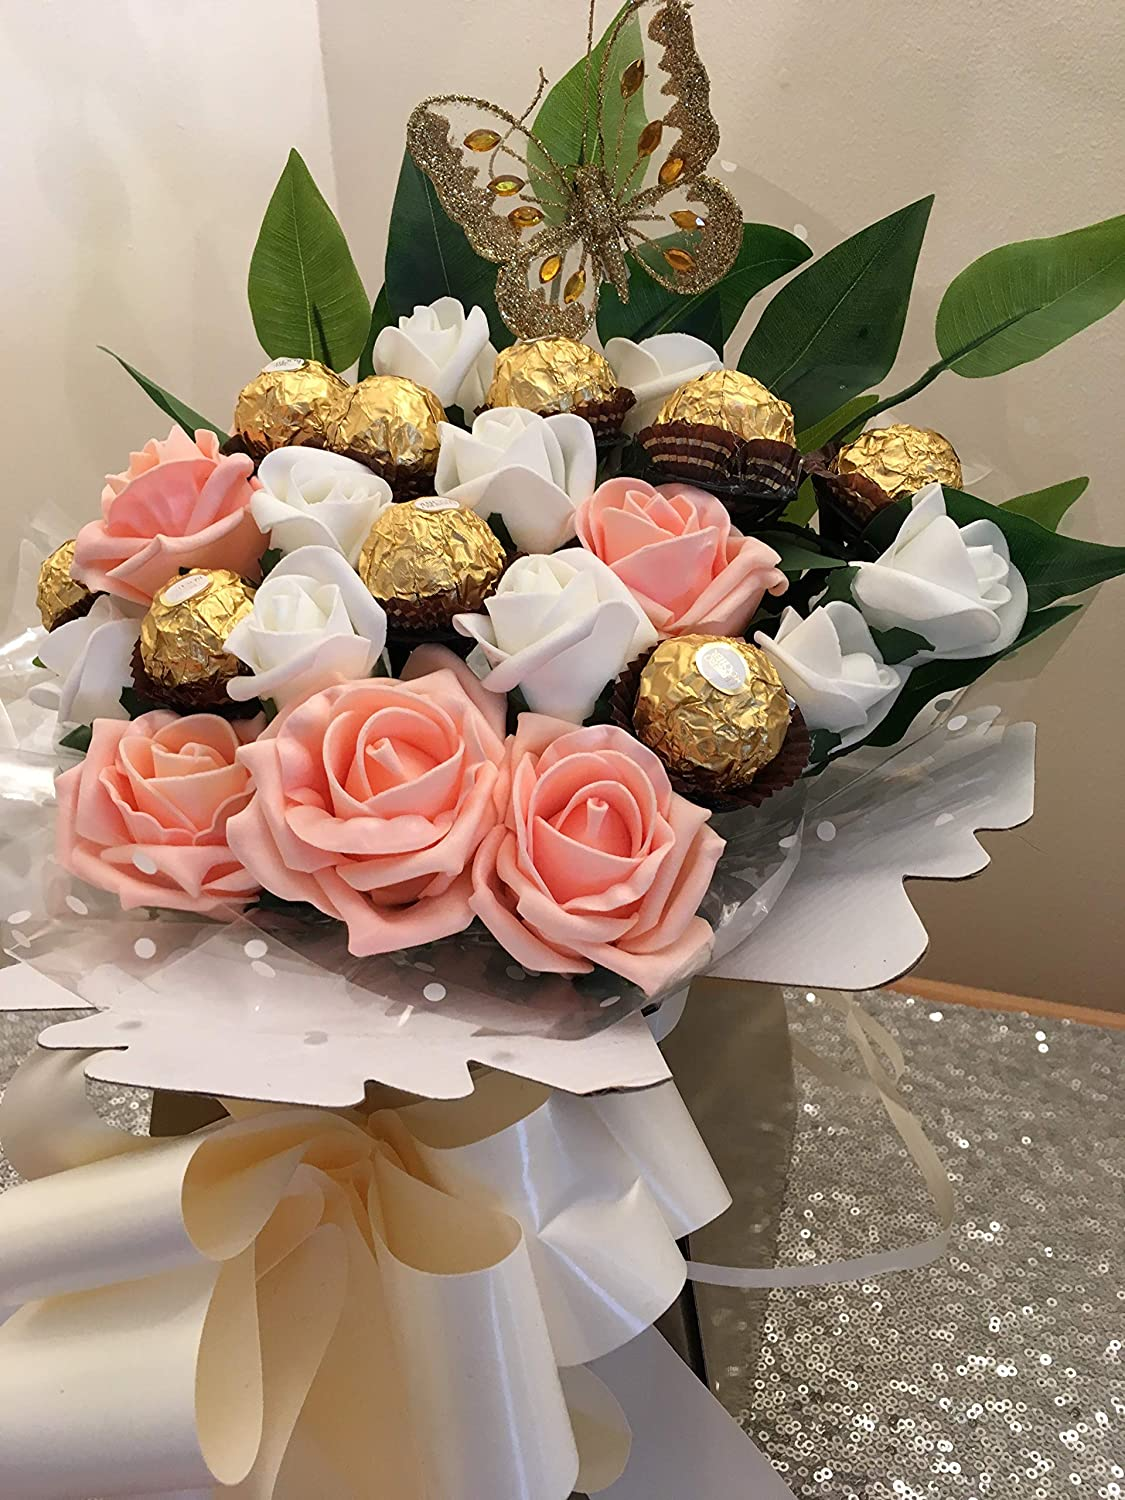 Ferrero Rocher Chocolate Peach White Roses Bouquet Hamper Gift Idea Peach Ferrero Amazon Co Uk Grocery